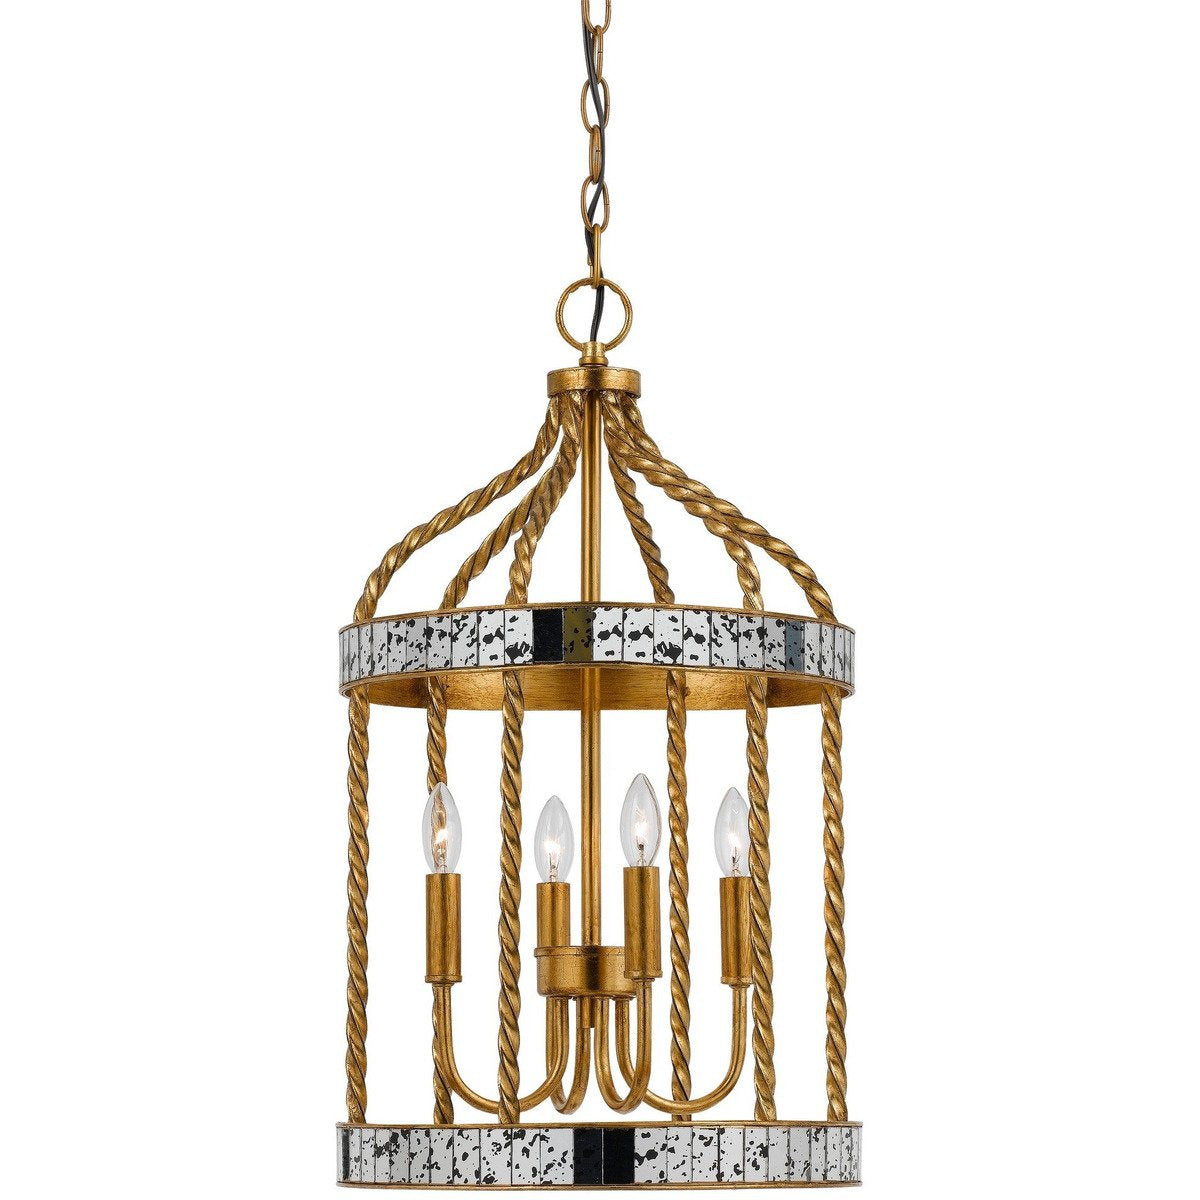 Chandeliers & Pendants - Metal Bird Cage Design Pendant With Woven Rope Pattern, Gold